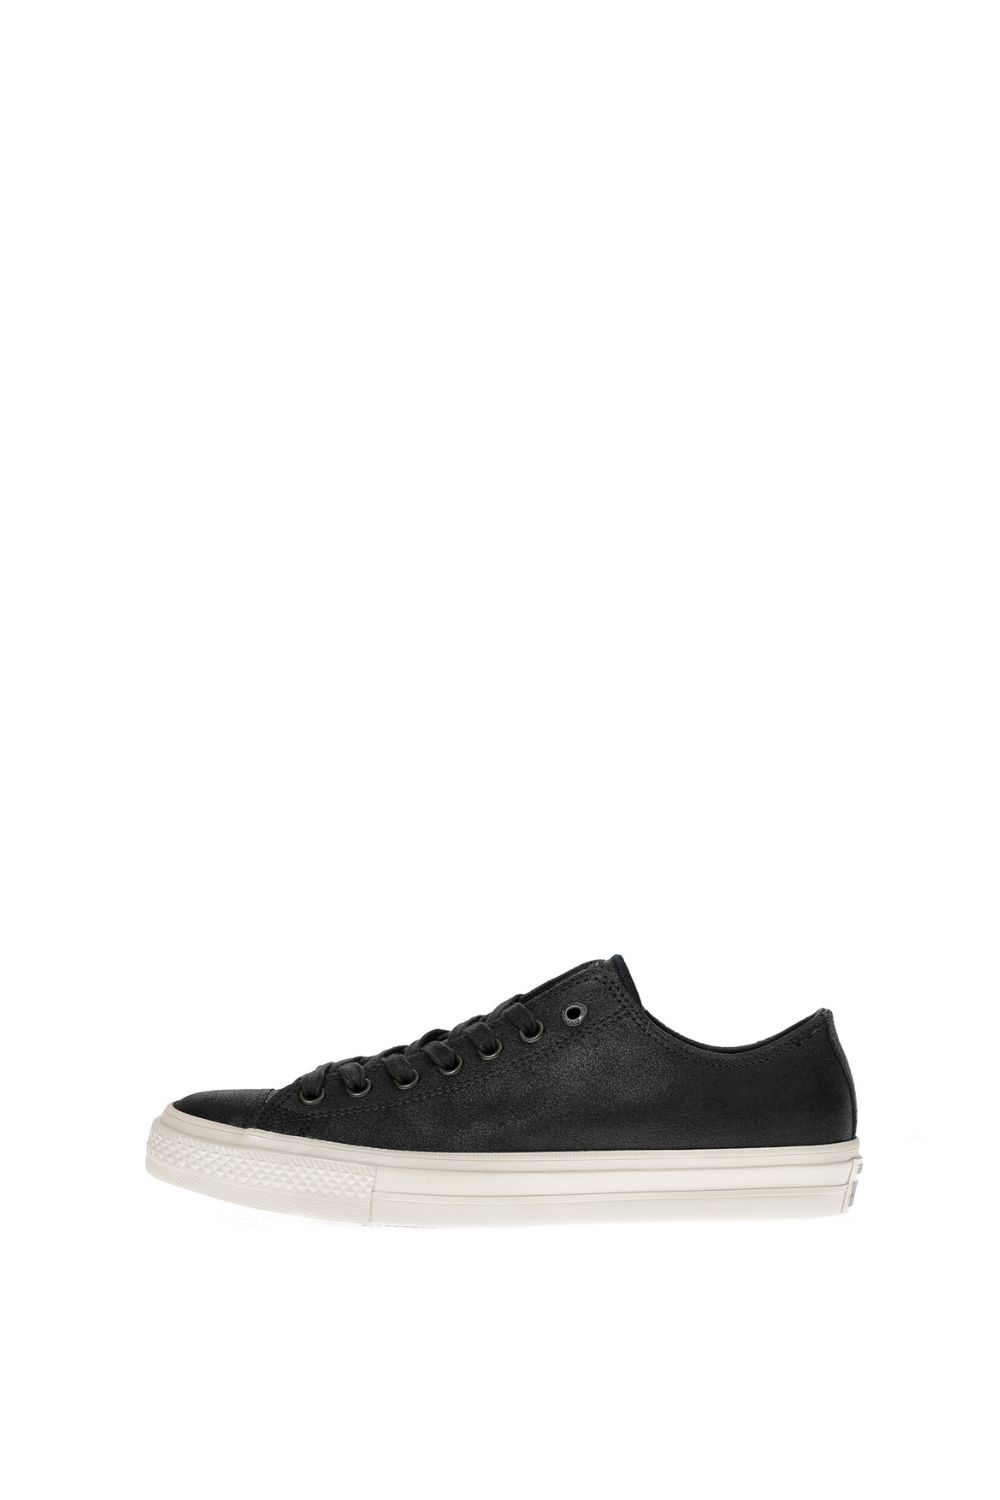 CONVERSE – Unisex sneakers CONVERSE Chuck Taylor All Star II Ox μαύρα